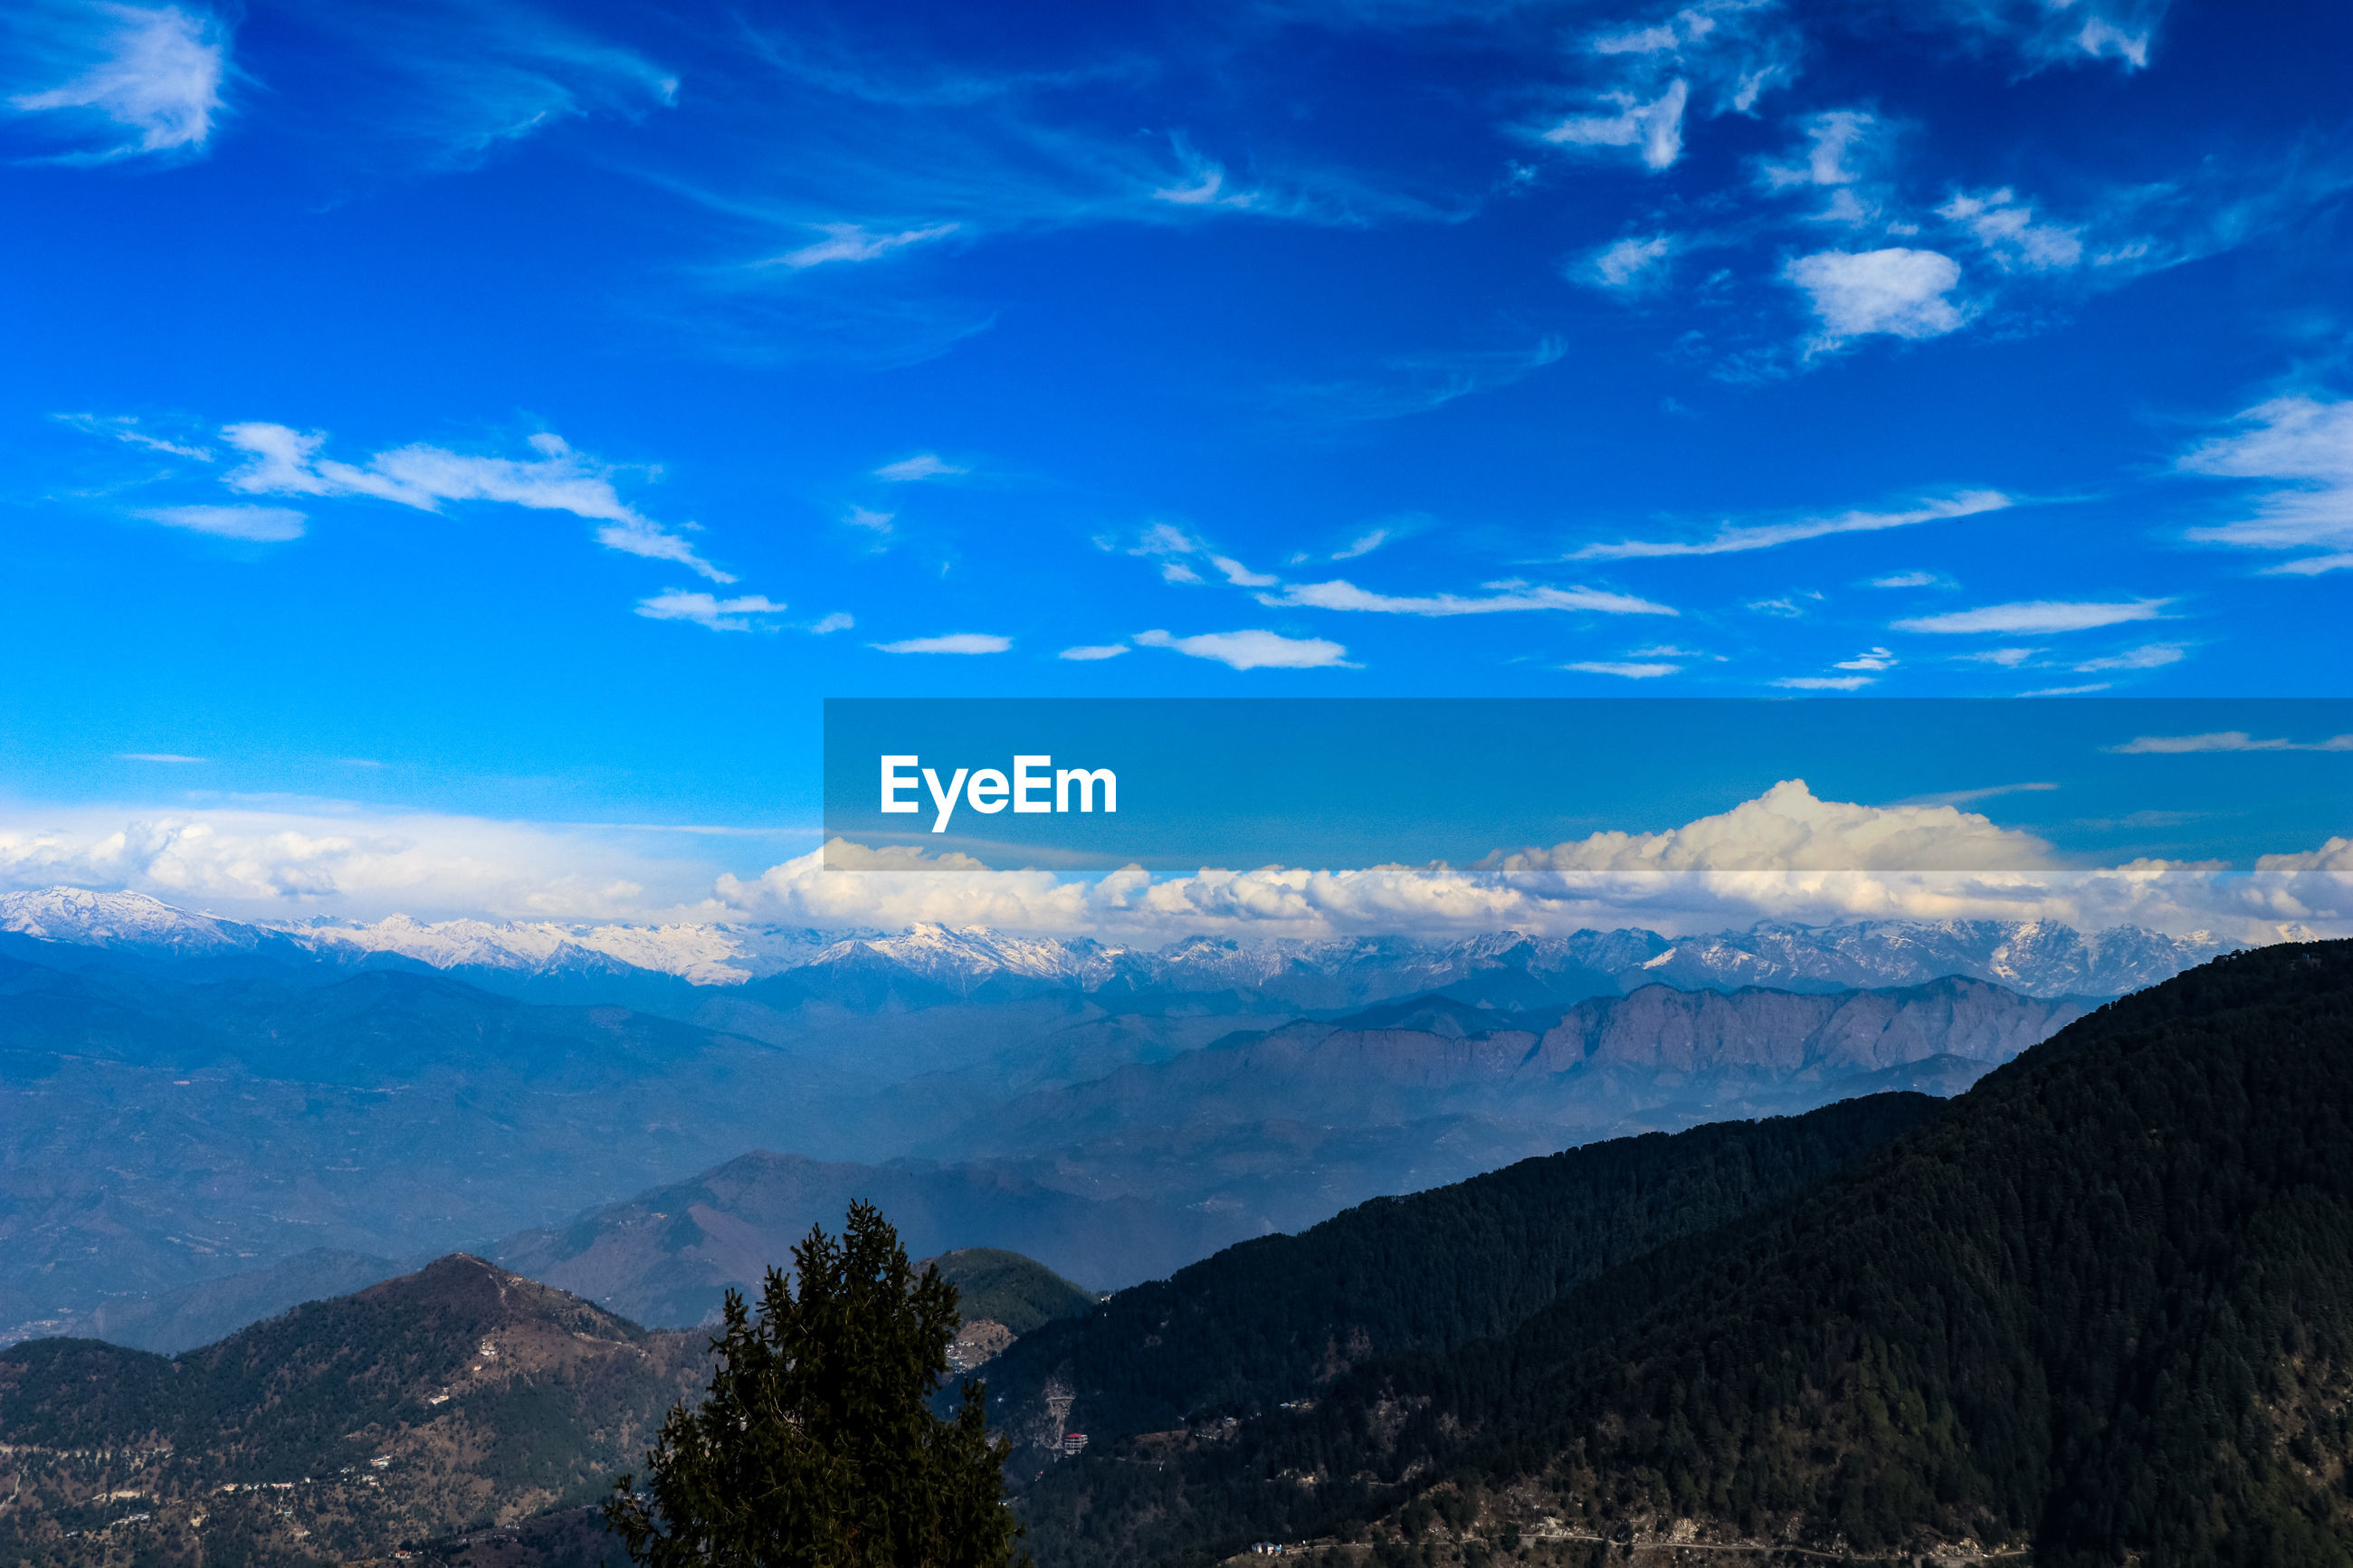 SCENIC VIEW OF MOUNTAIN RANGE AGAINST SKY